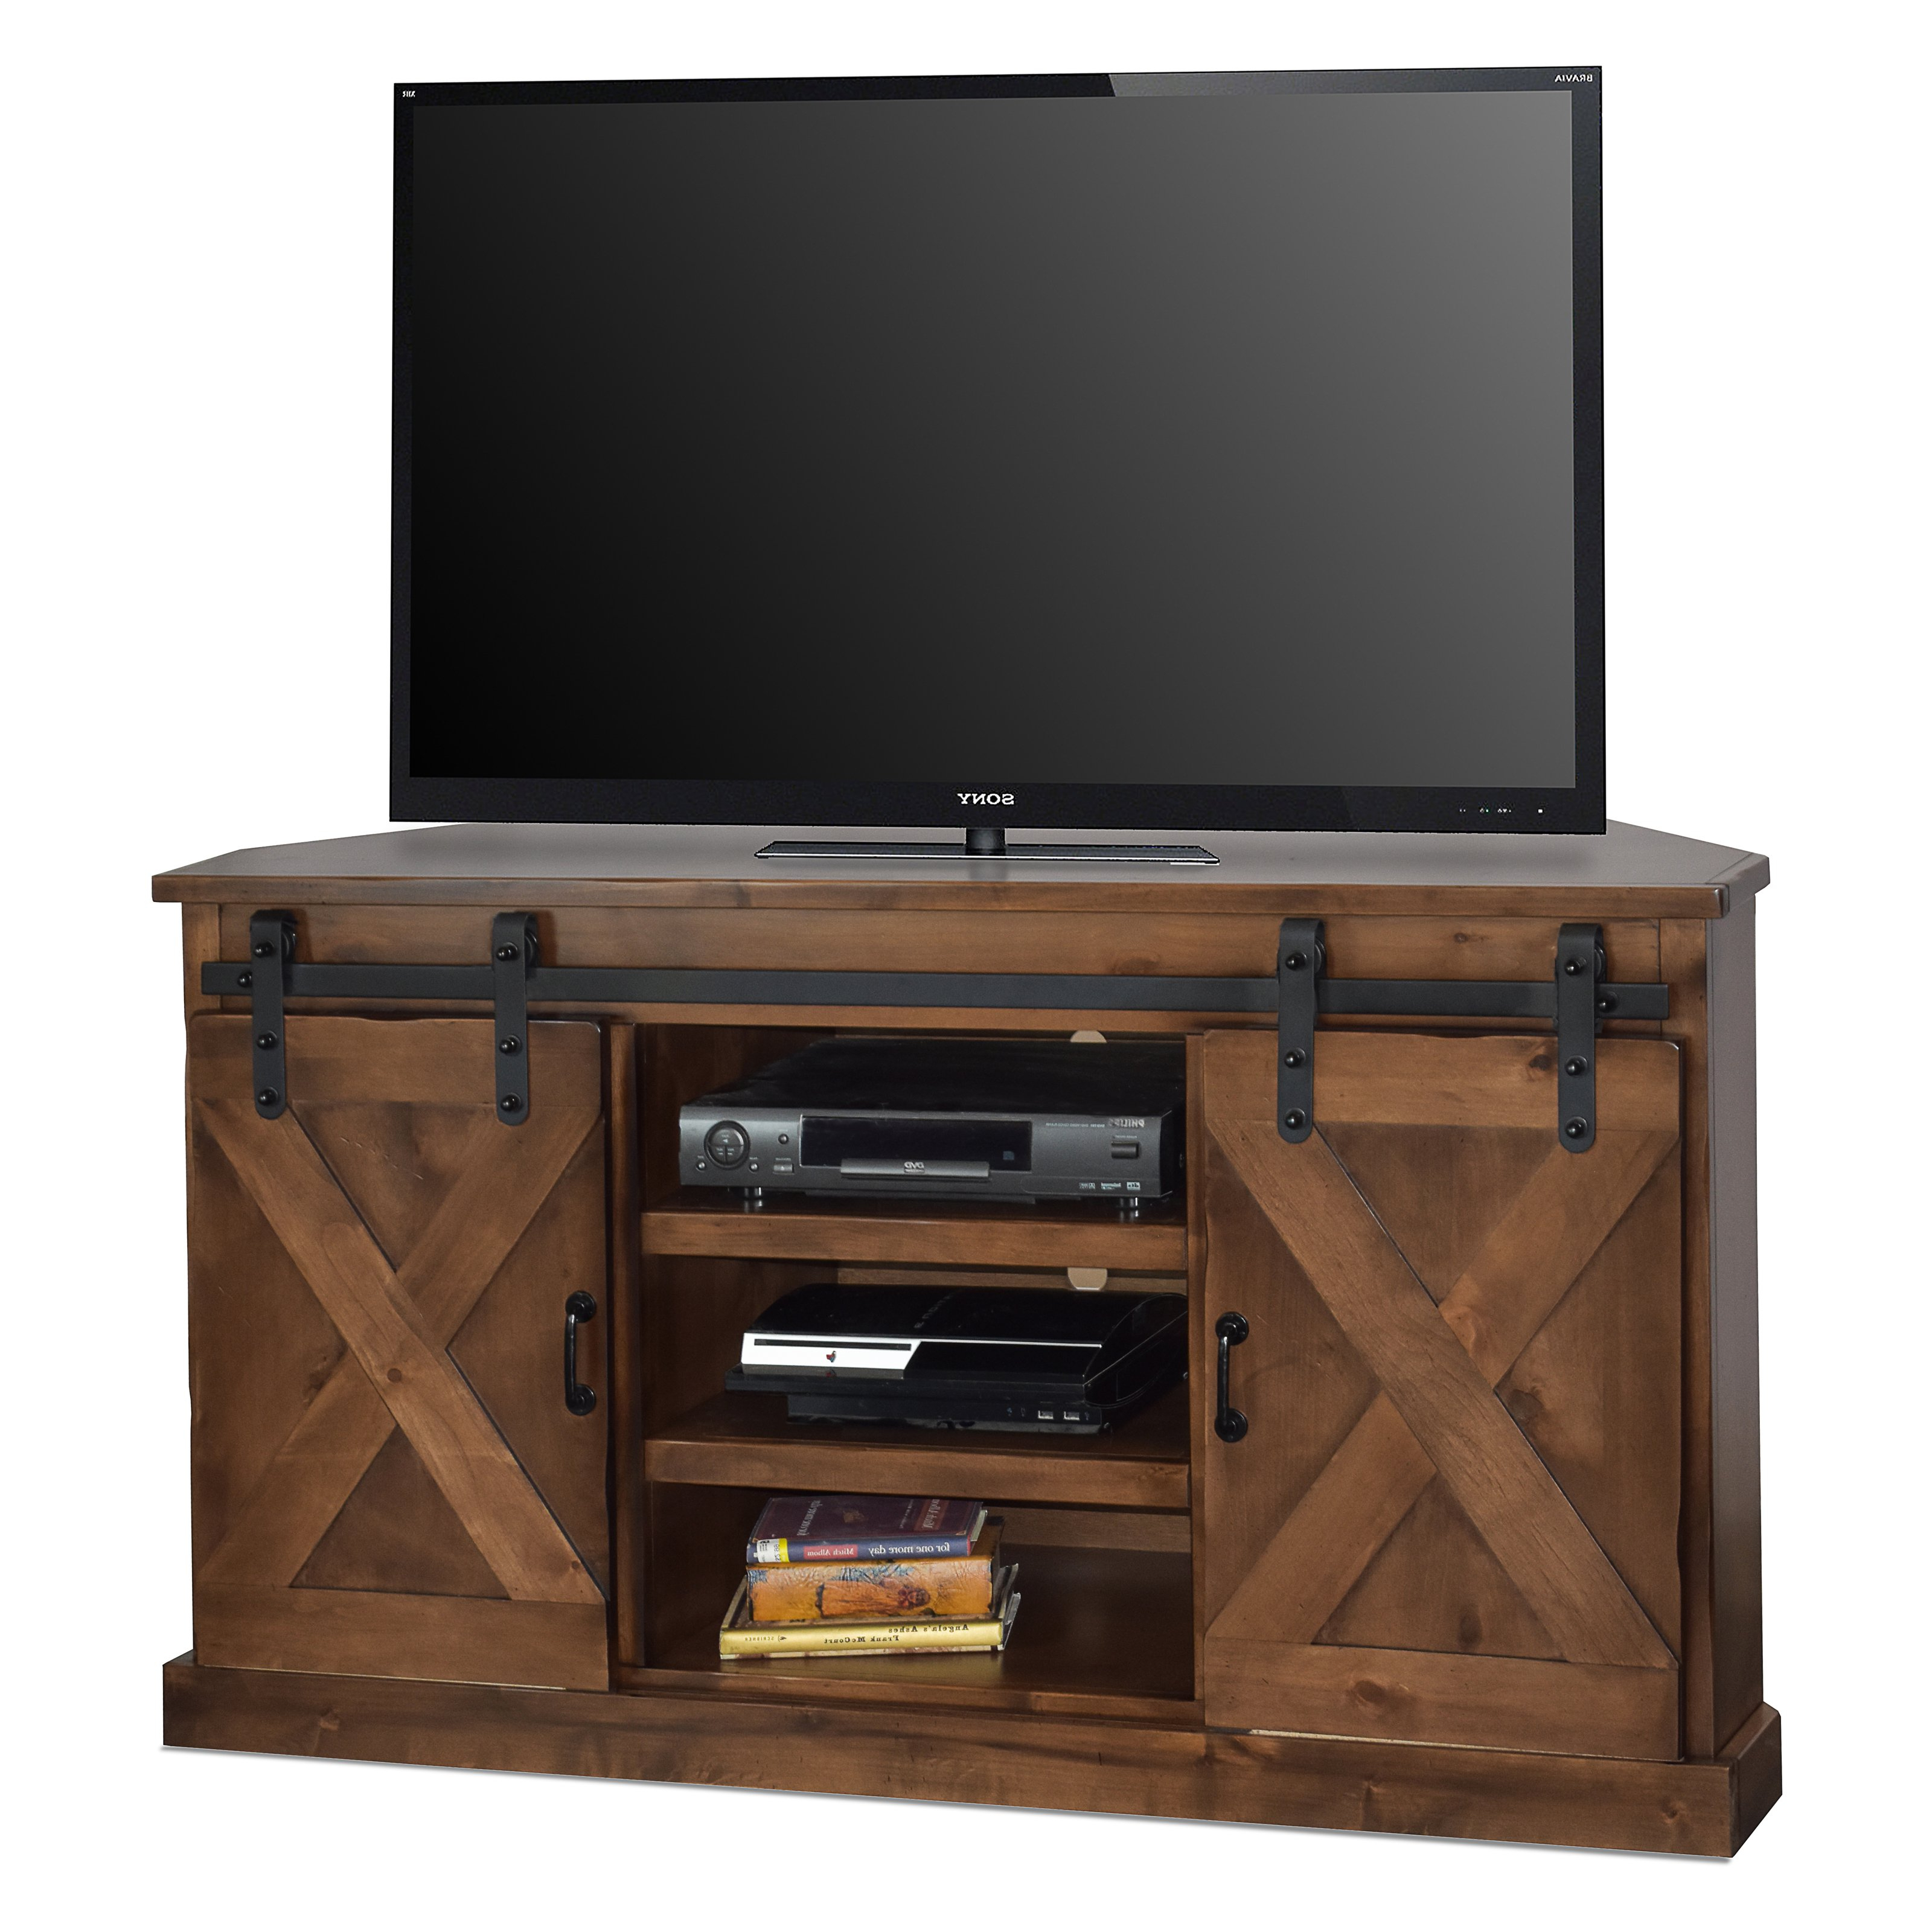 Tv Stands & Entertainment Centers | Hayneedle Regarding Century White 60 Inch Tv Stands (View 16 of 20)